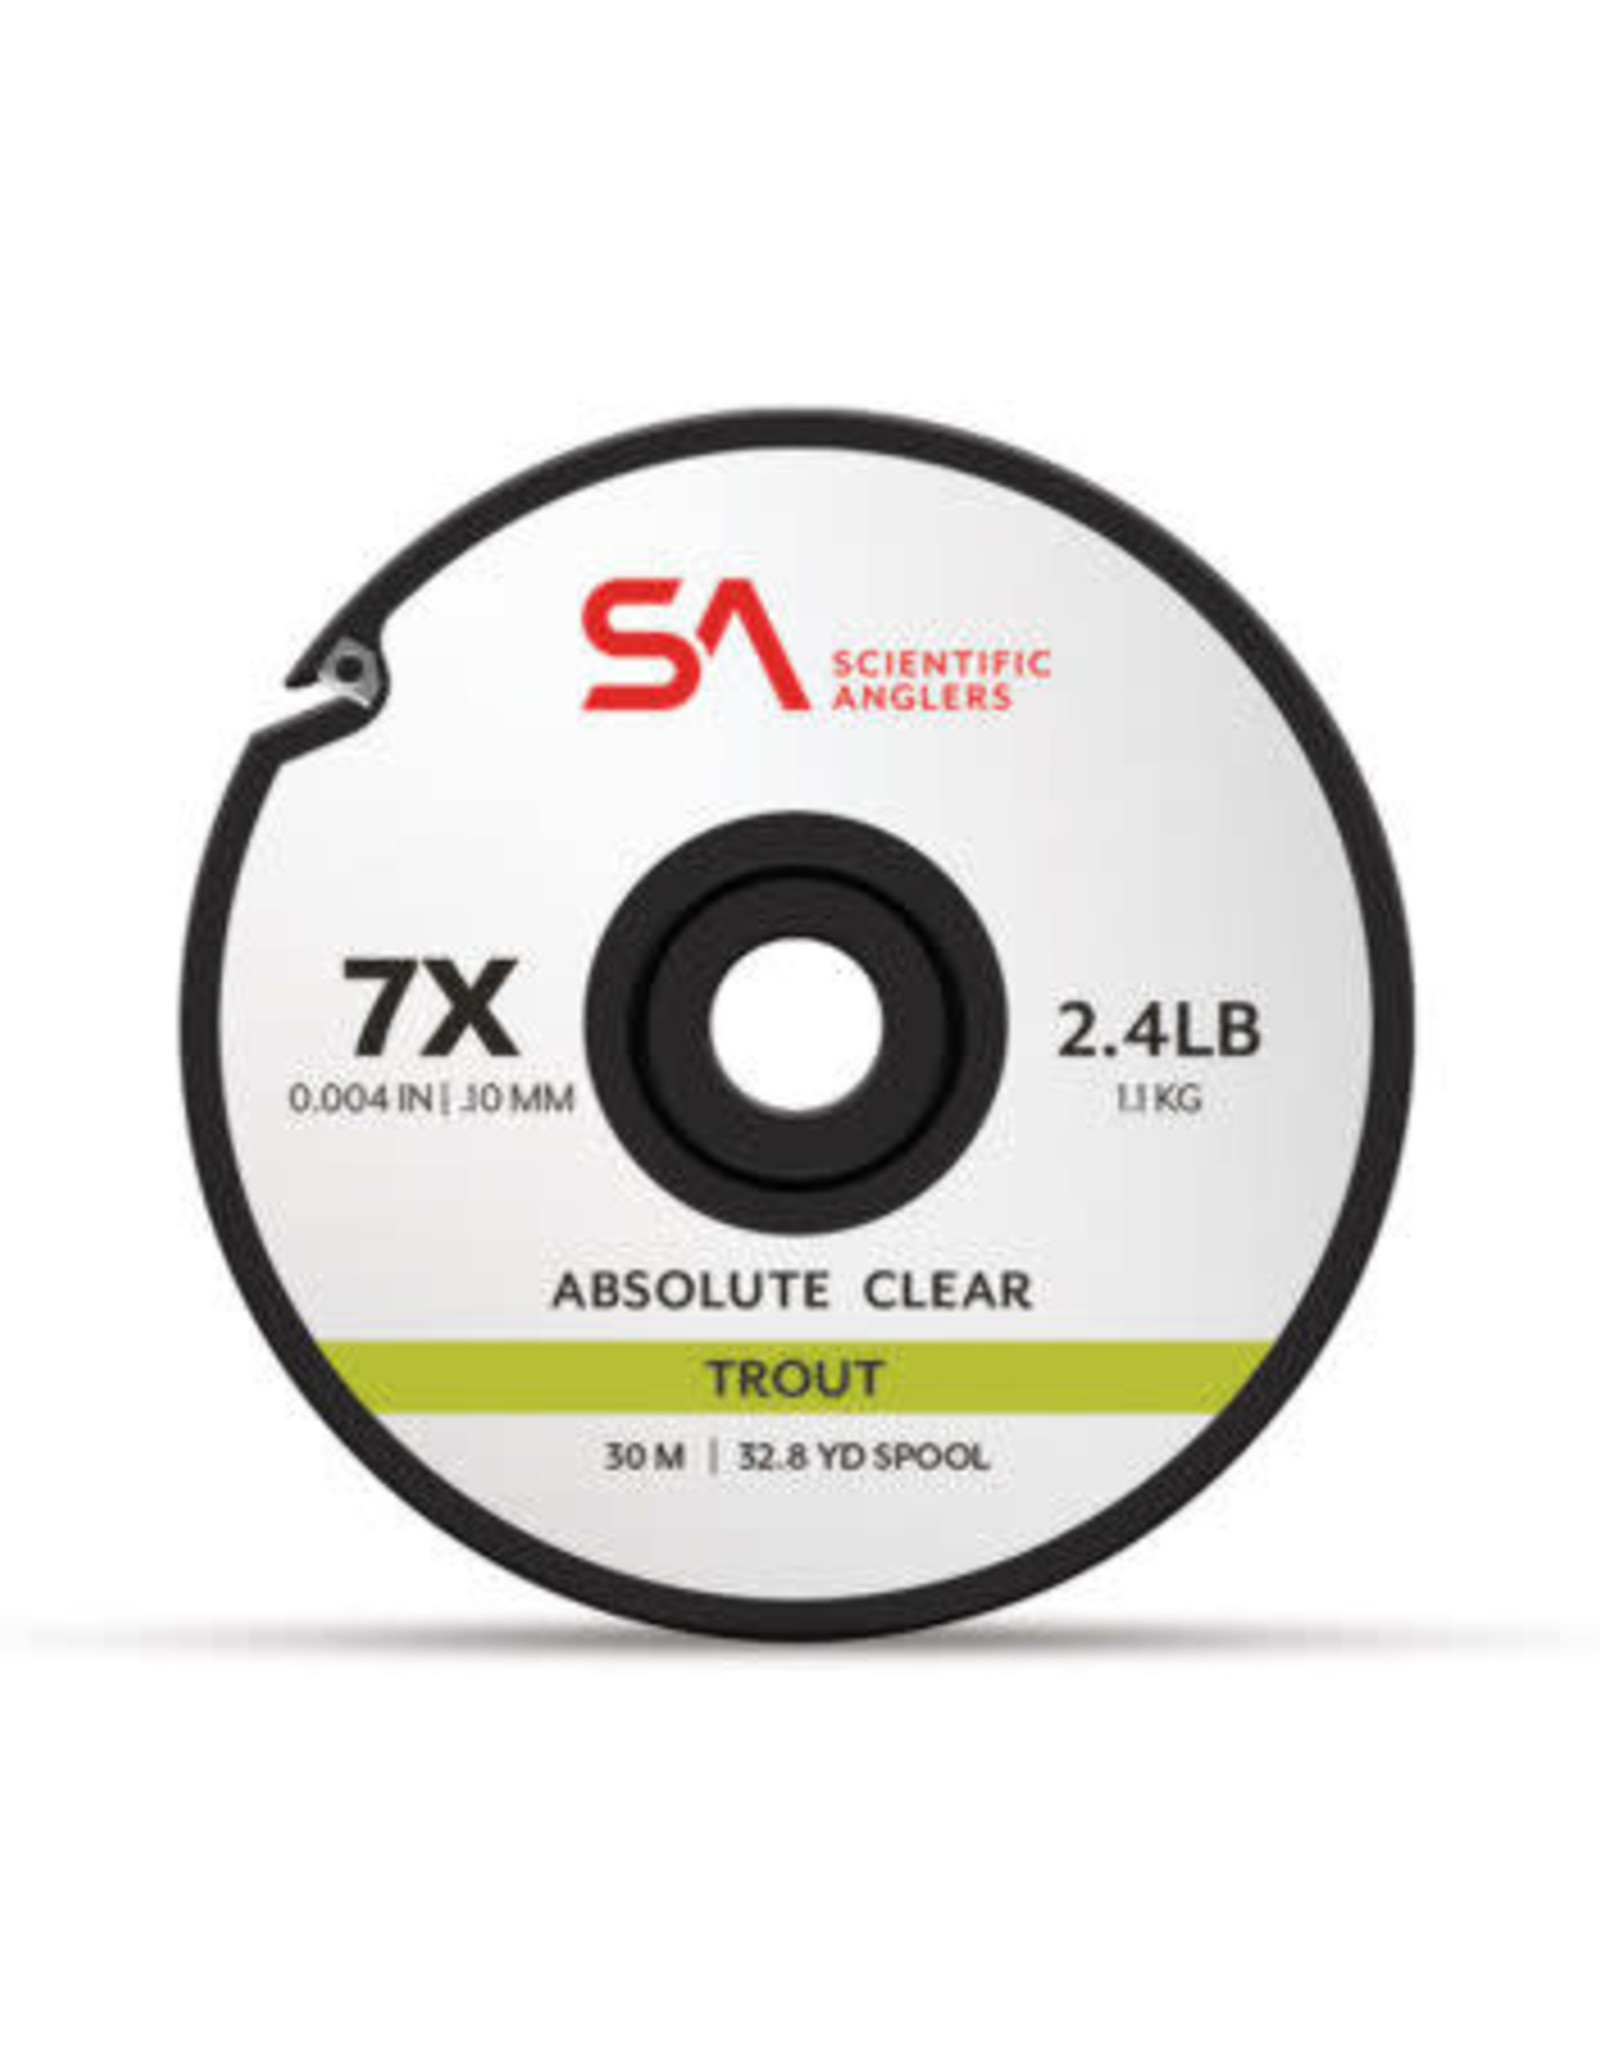 Scientific Anglers Scientific Anglers Absolute Trout Tippet